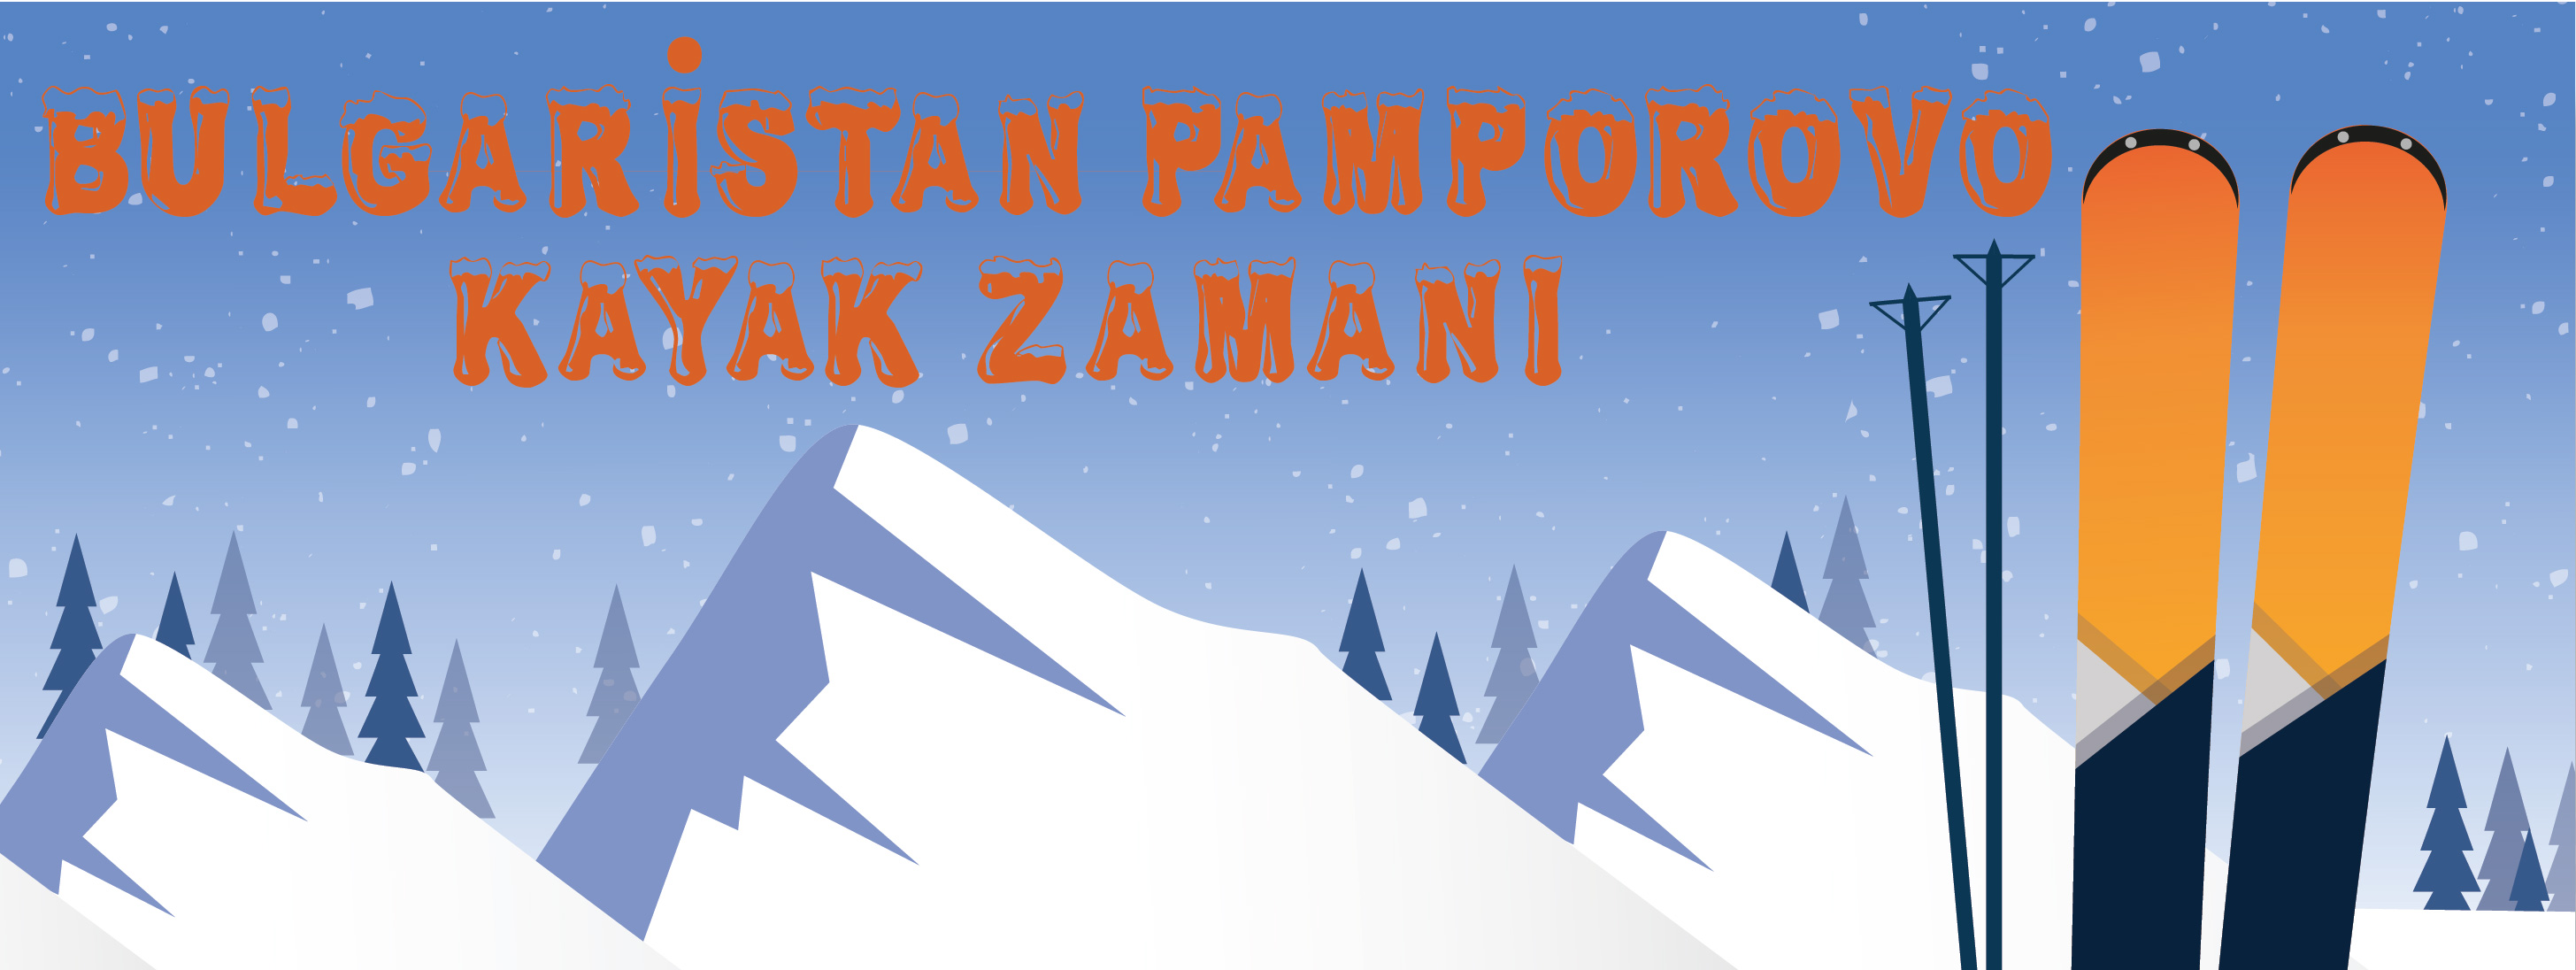 Pamporovo kayak zamanı